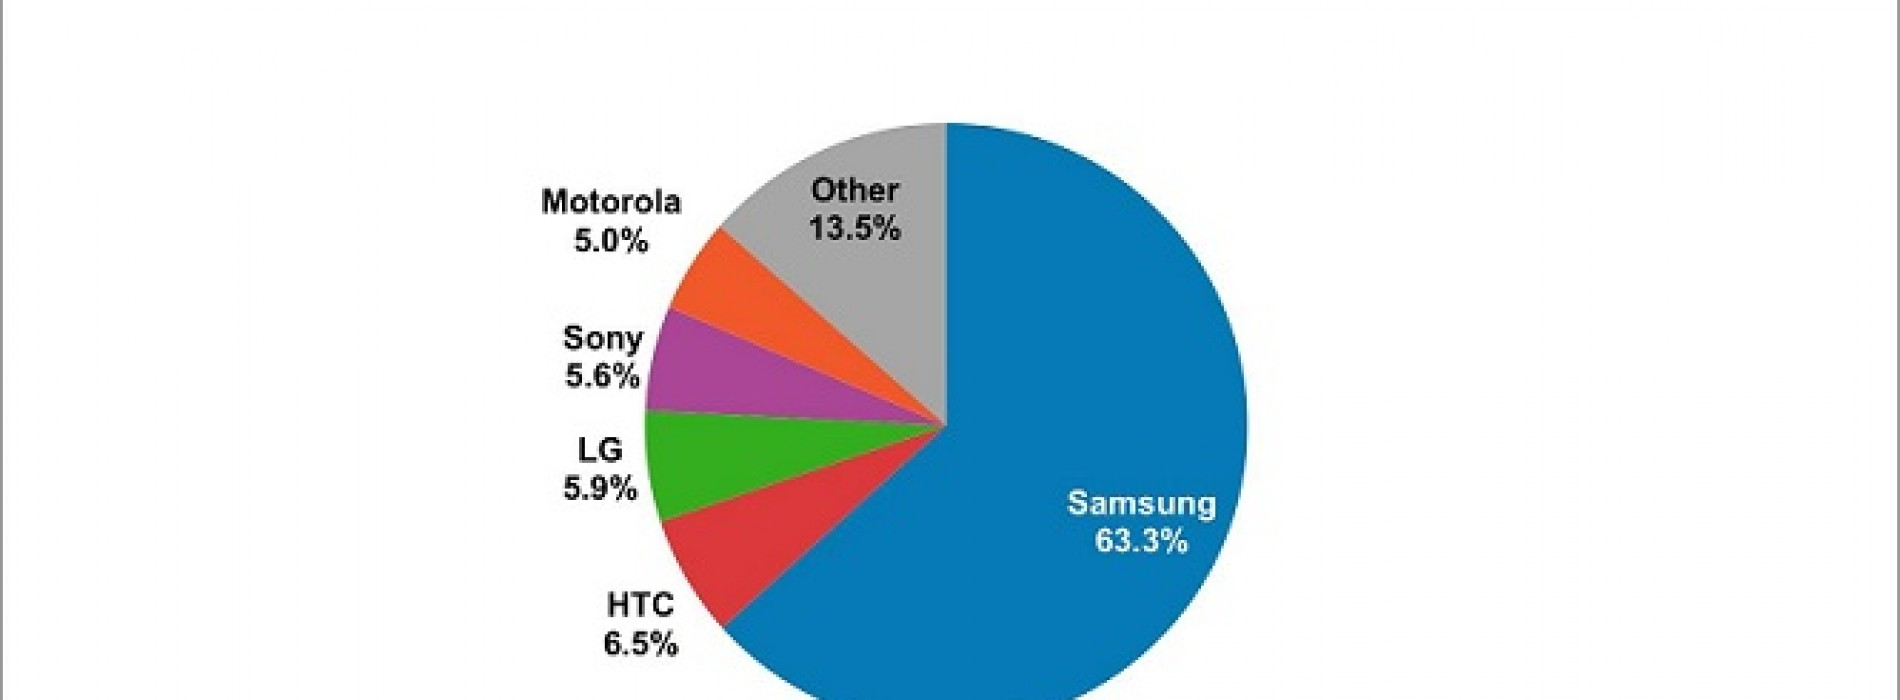 Samsung dominates Android space with 63 percent share